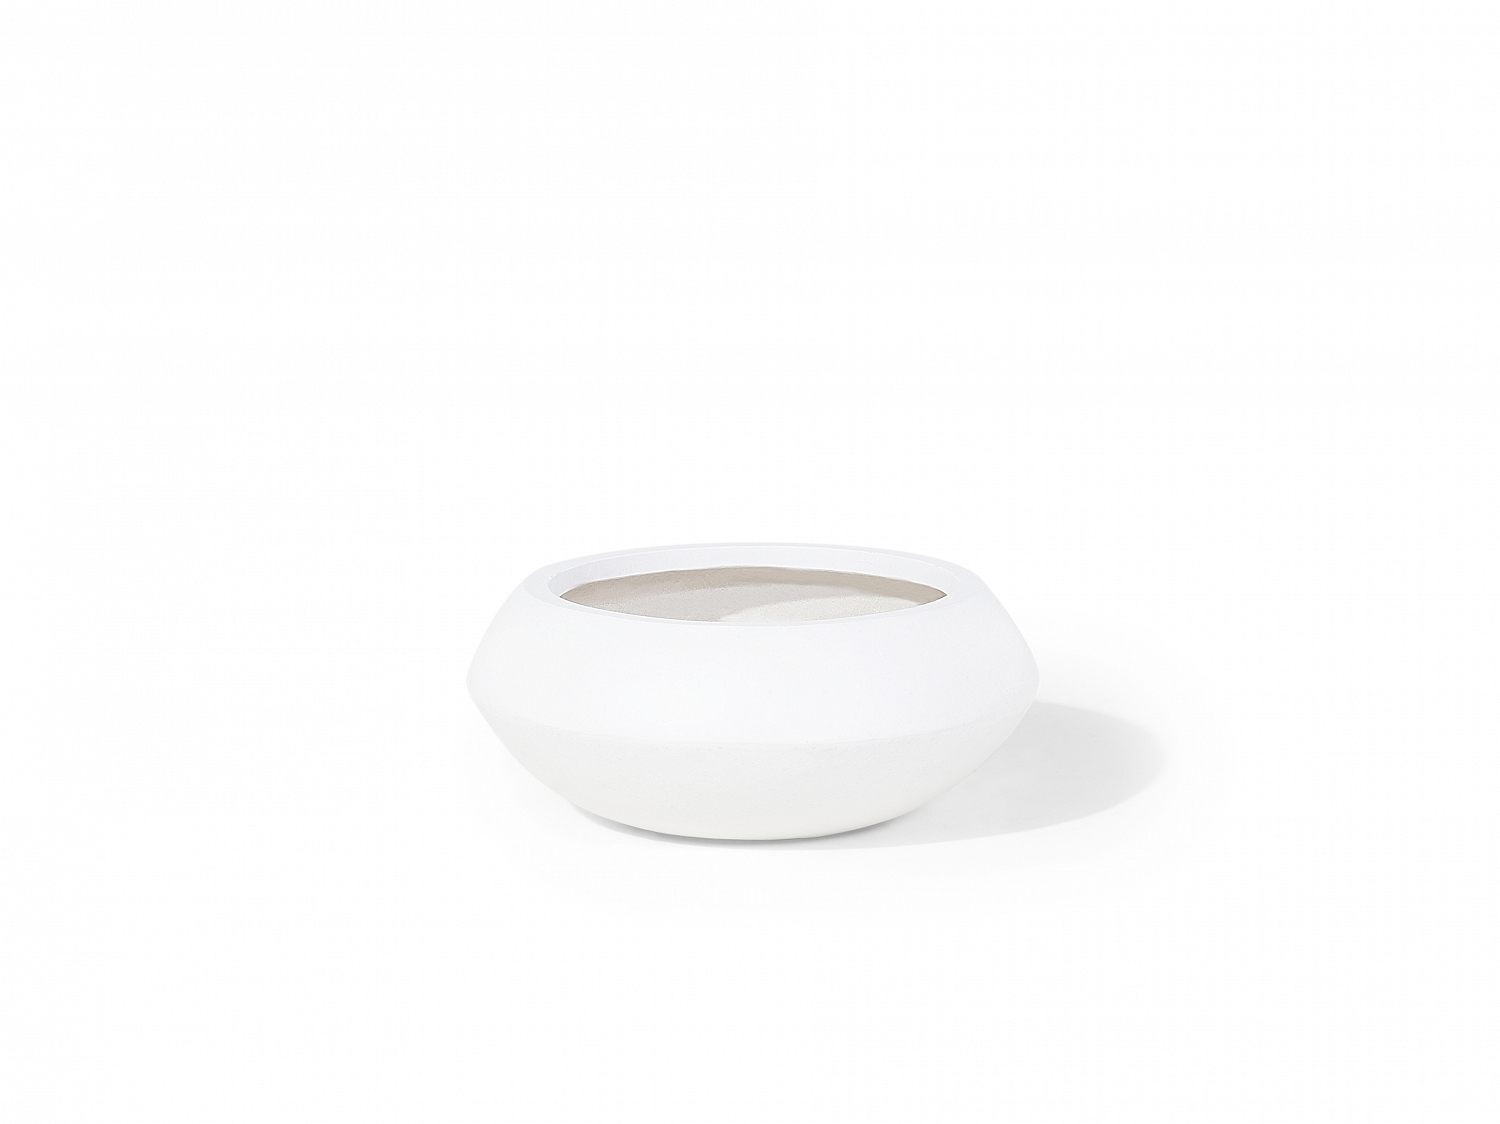 Cache pot de jardin cache pot ovale blanc 35x35 cm for Cache pot interieur